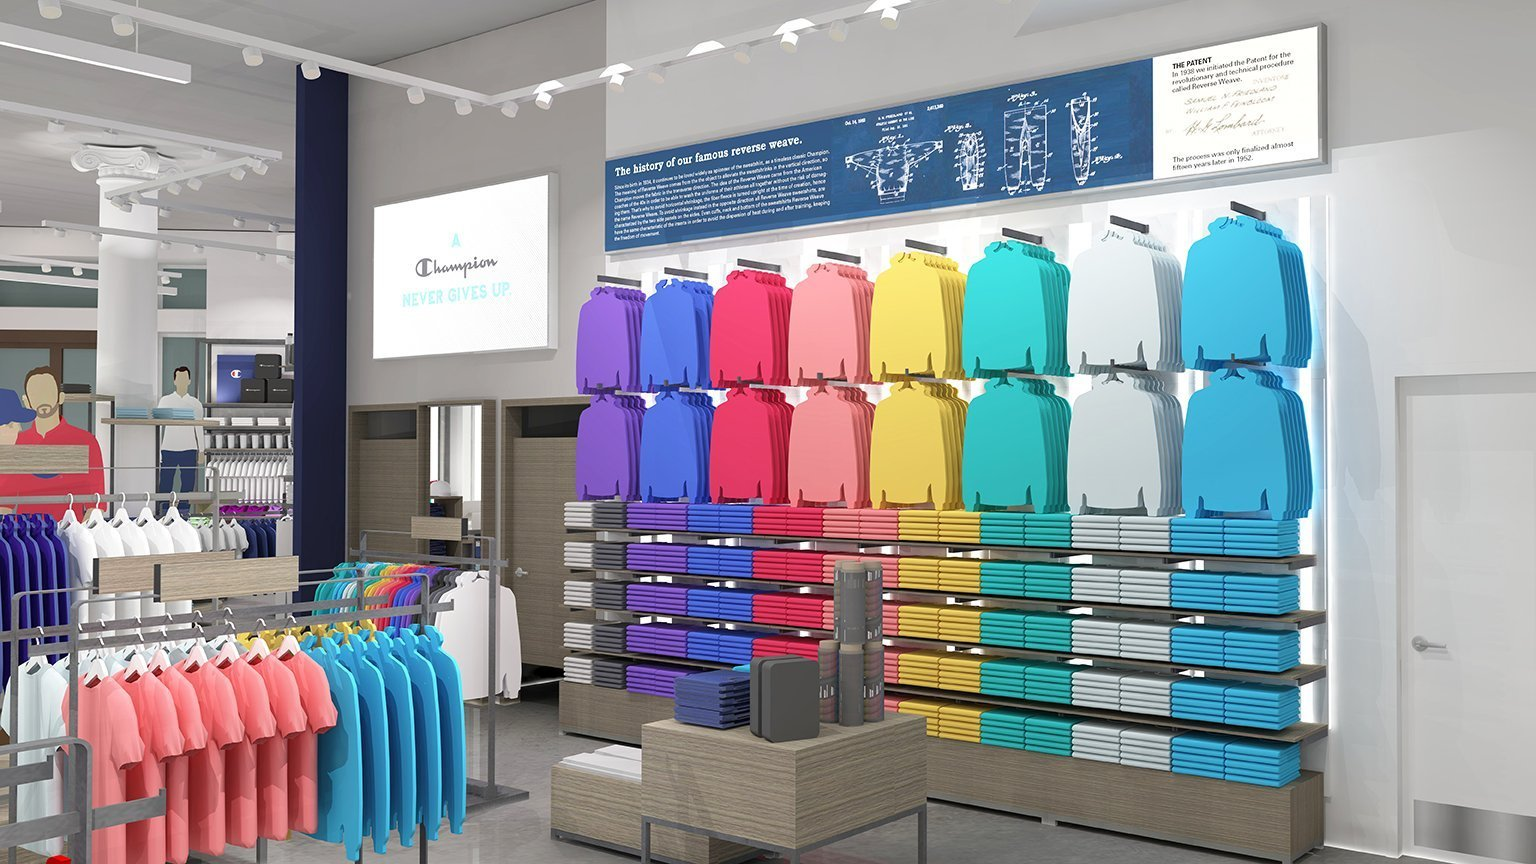 A colorful hoodie display showcases Champion's reverse weave textiles, in a space with white walls and light wood retail fixtures displaying merchandise.